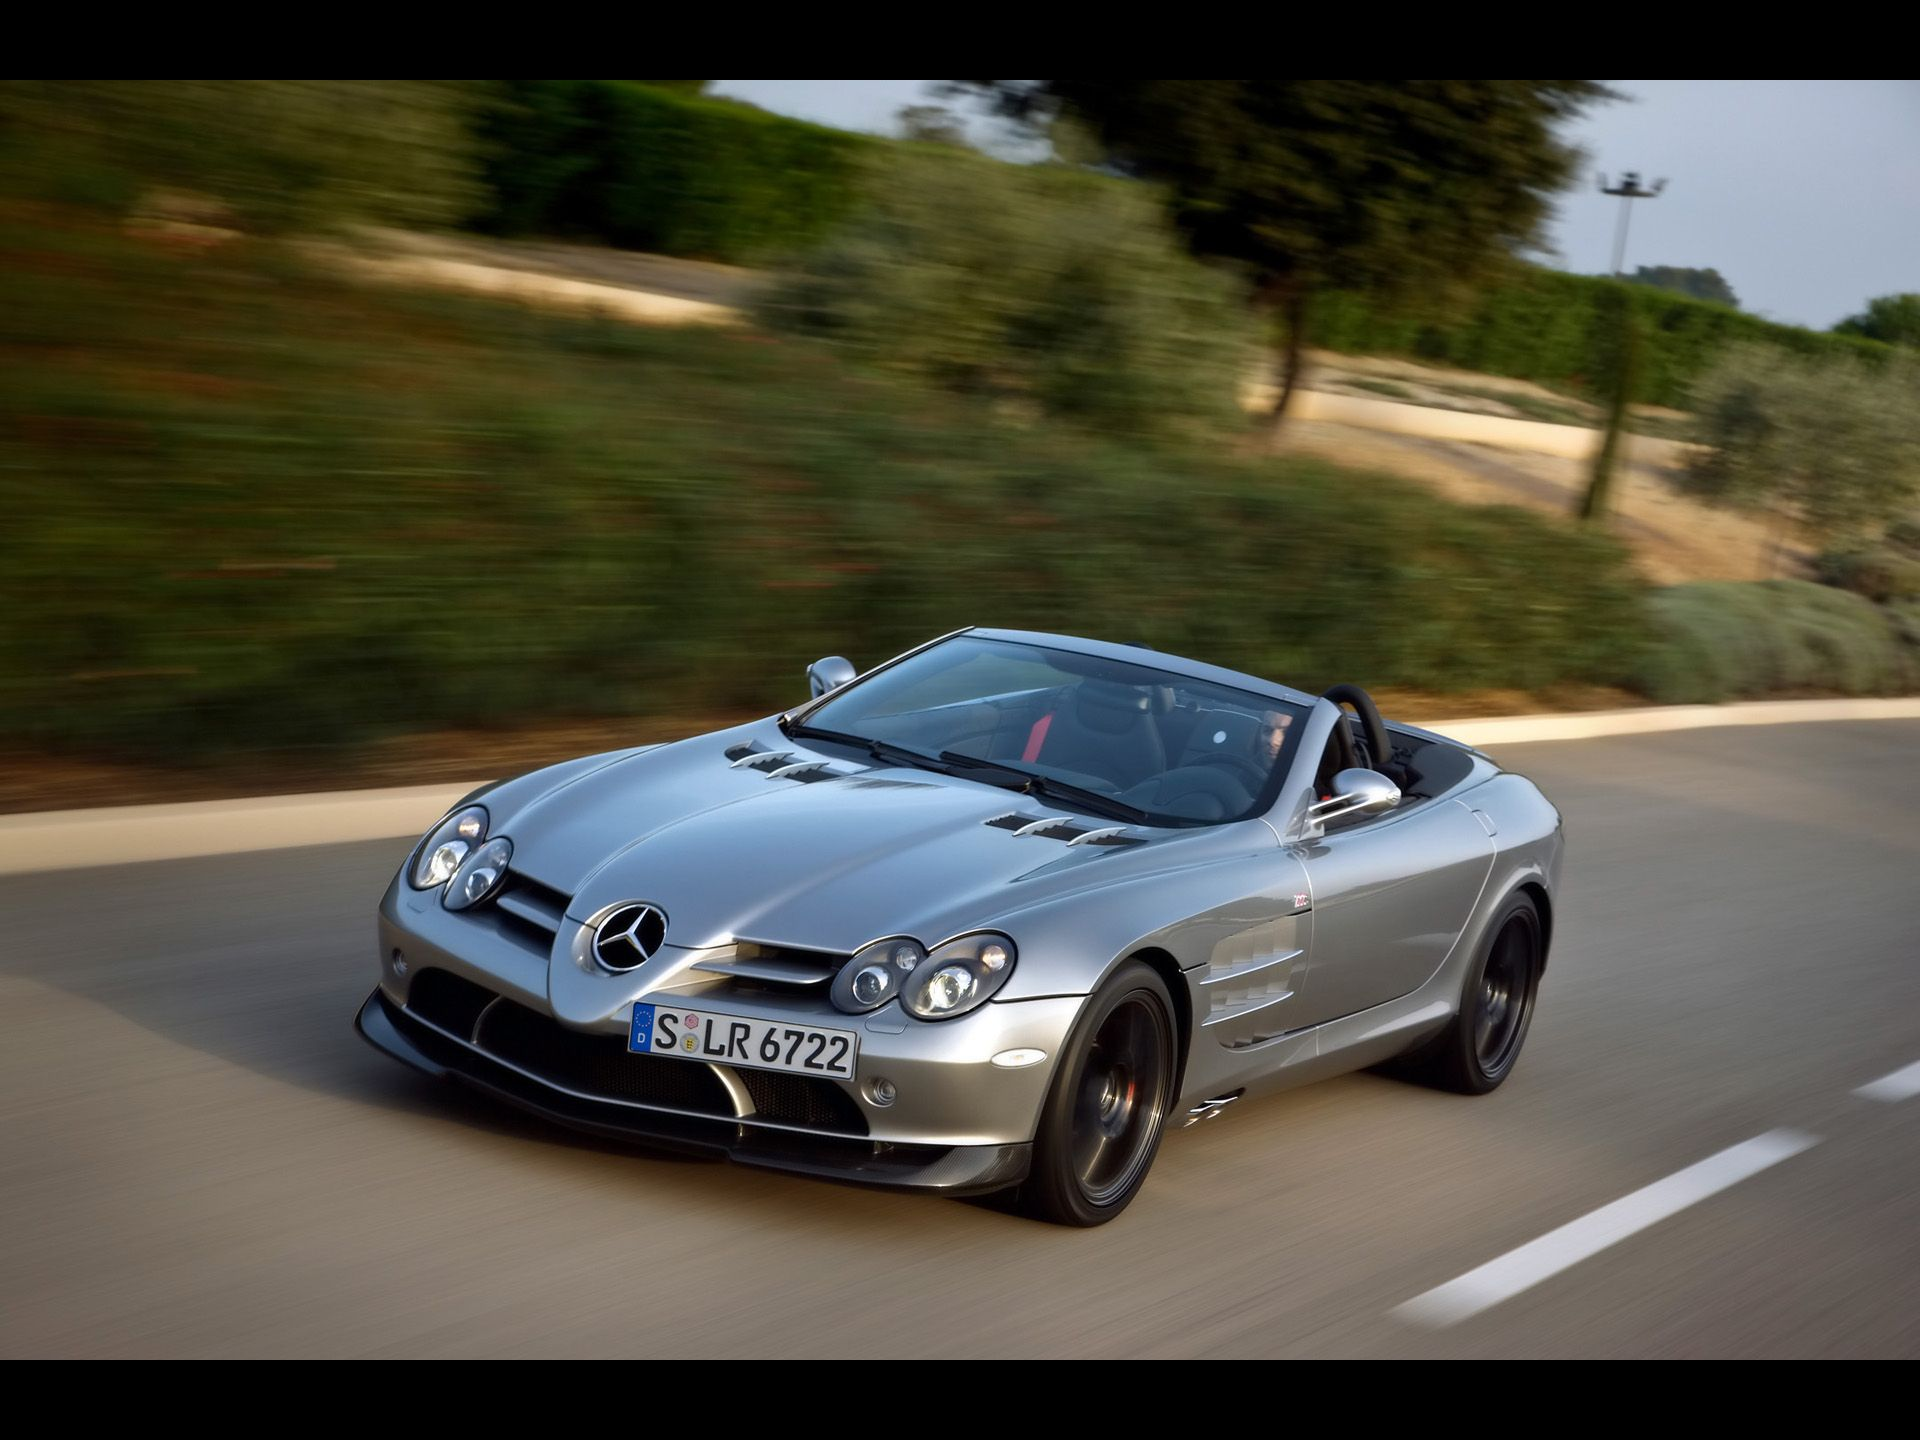 Www Illiconego Com Amg Slr Roadster 722s Amg Pinterest